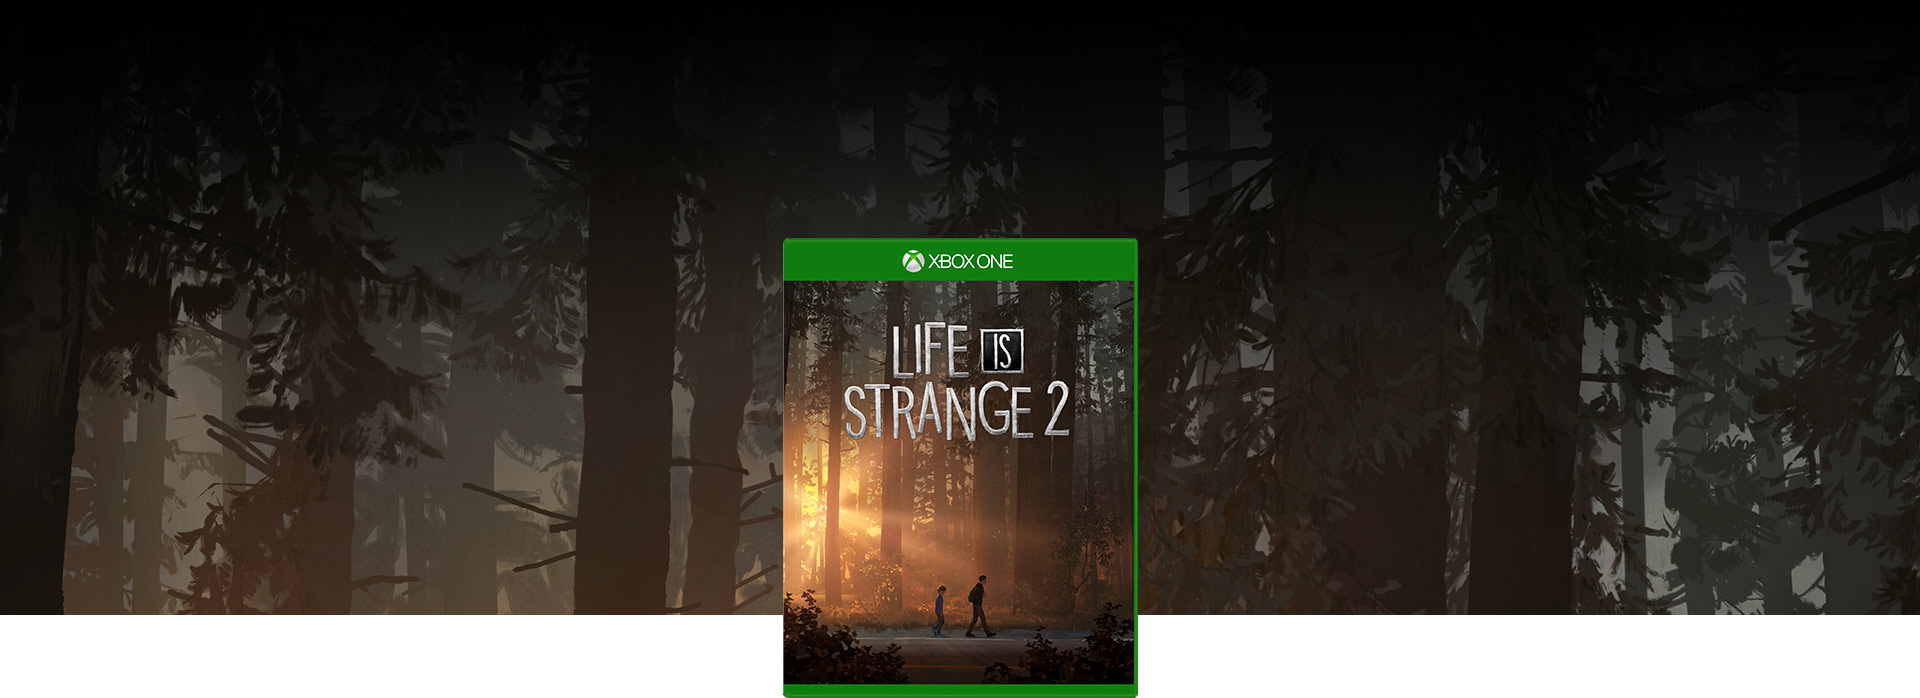 Life is Strange 2 boxshot, background of trees in a Seattle forest